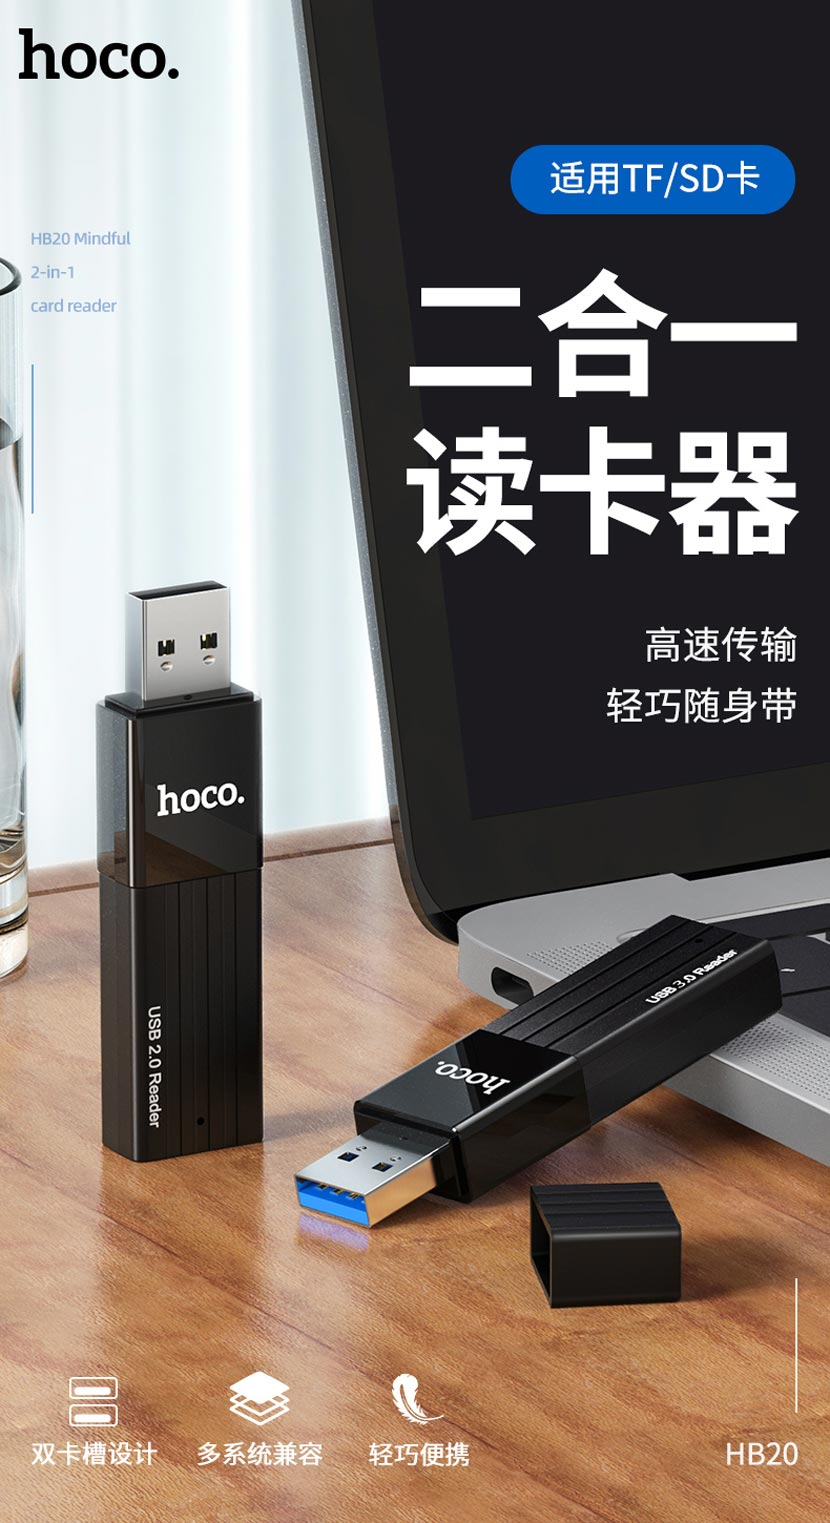 hoco news hb20 mindful 2in1 card reader cn